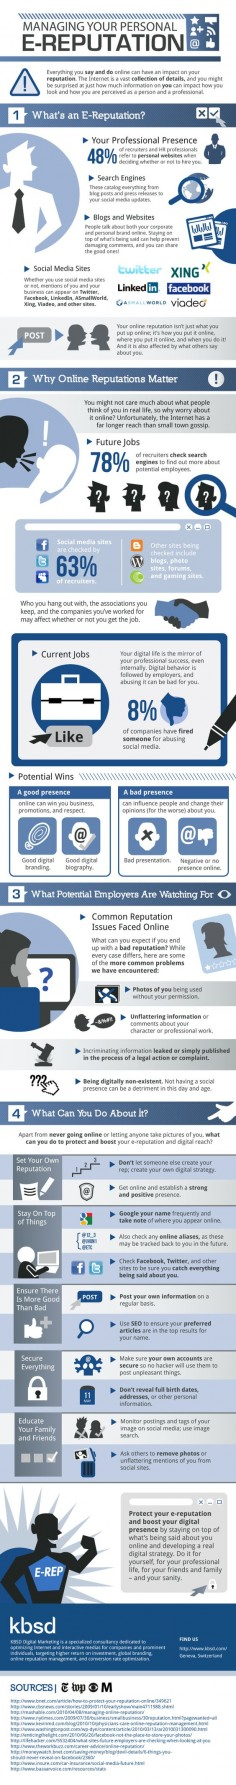 Protecting Your Online Rep: 4 things you NTK (infographic)